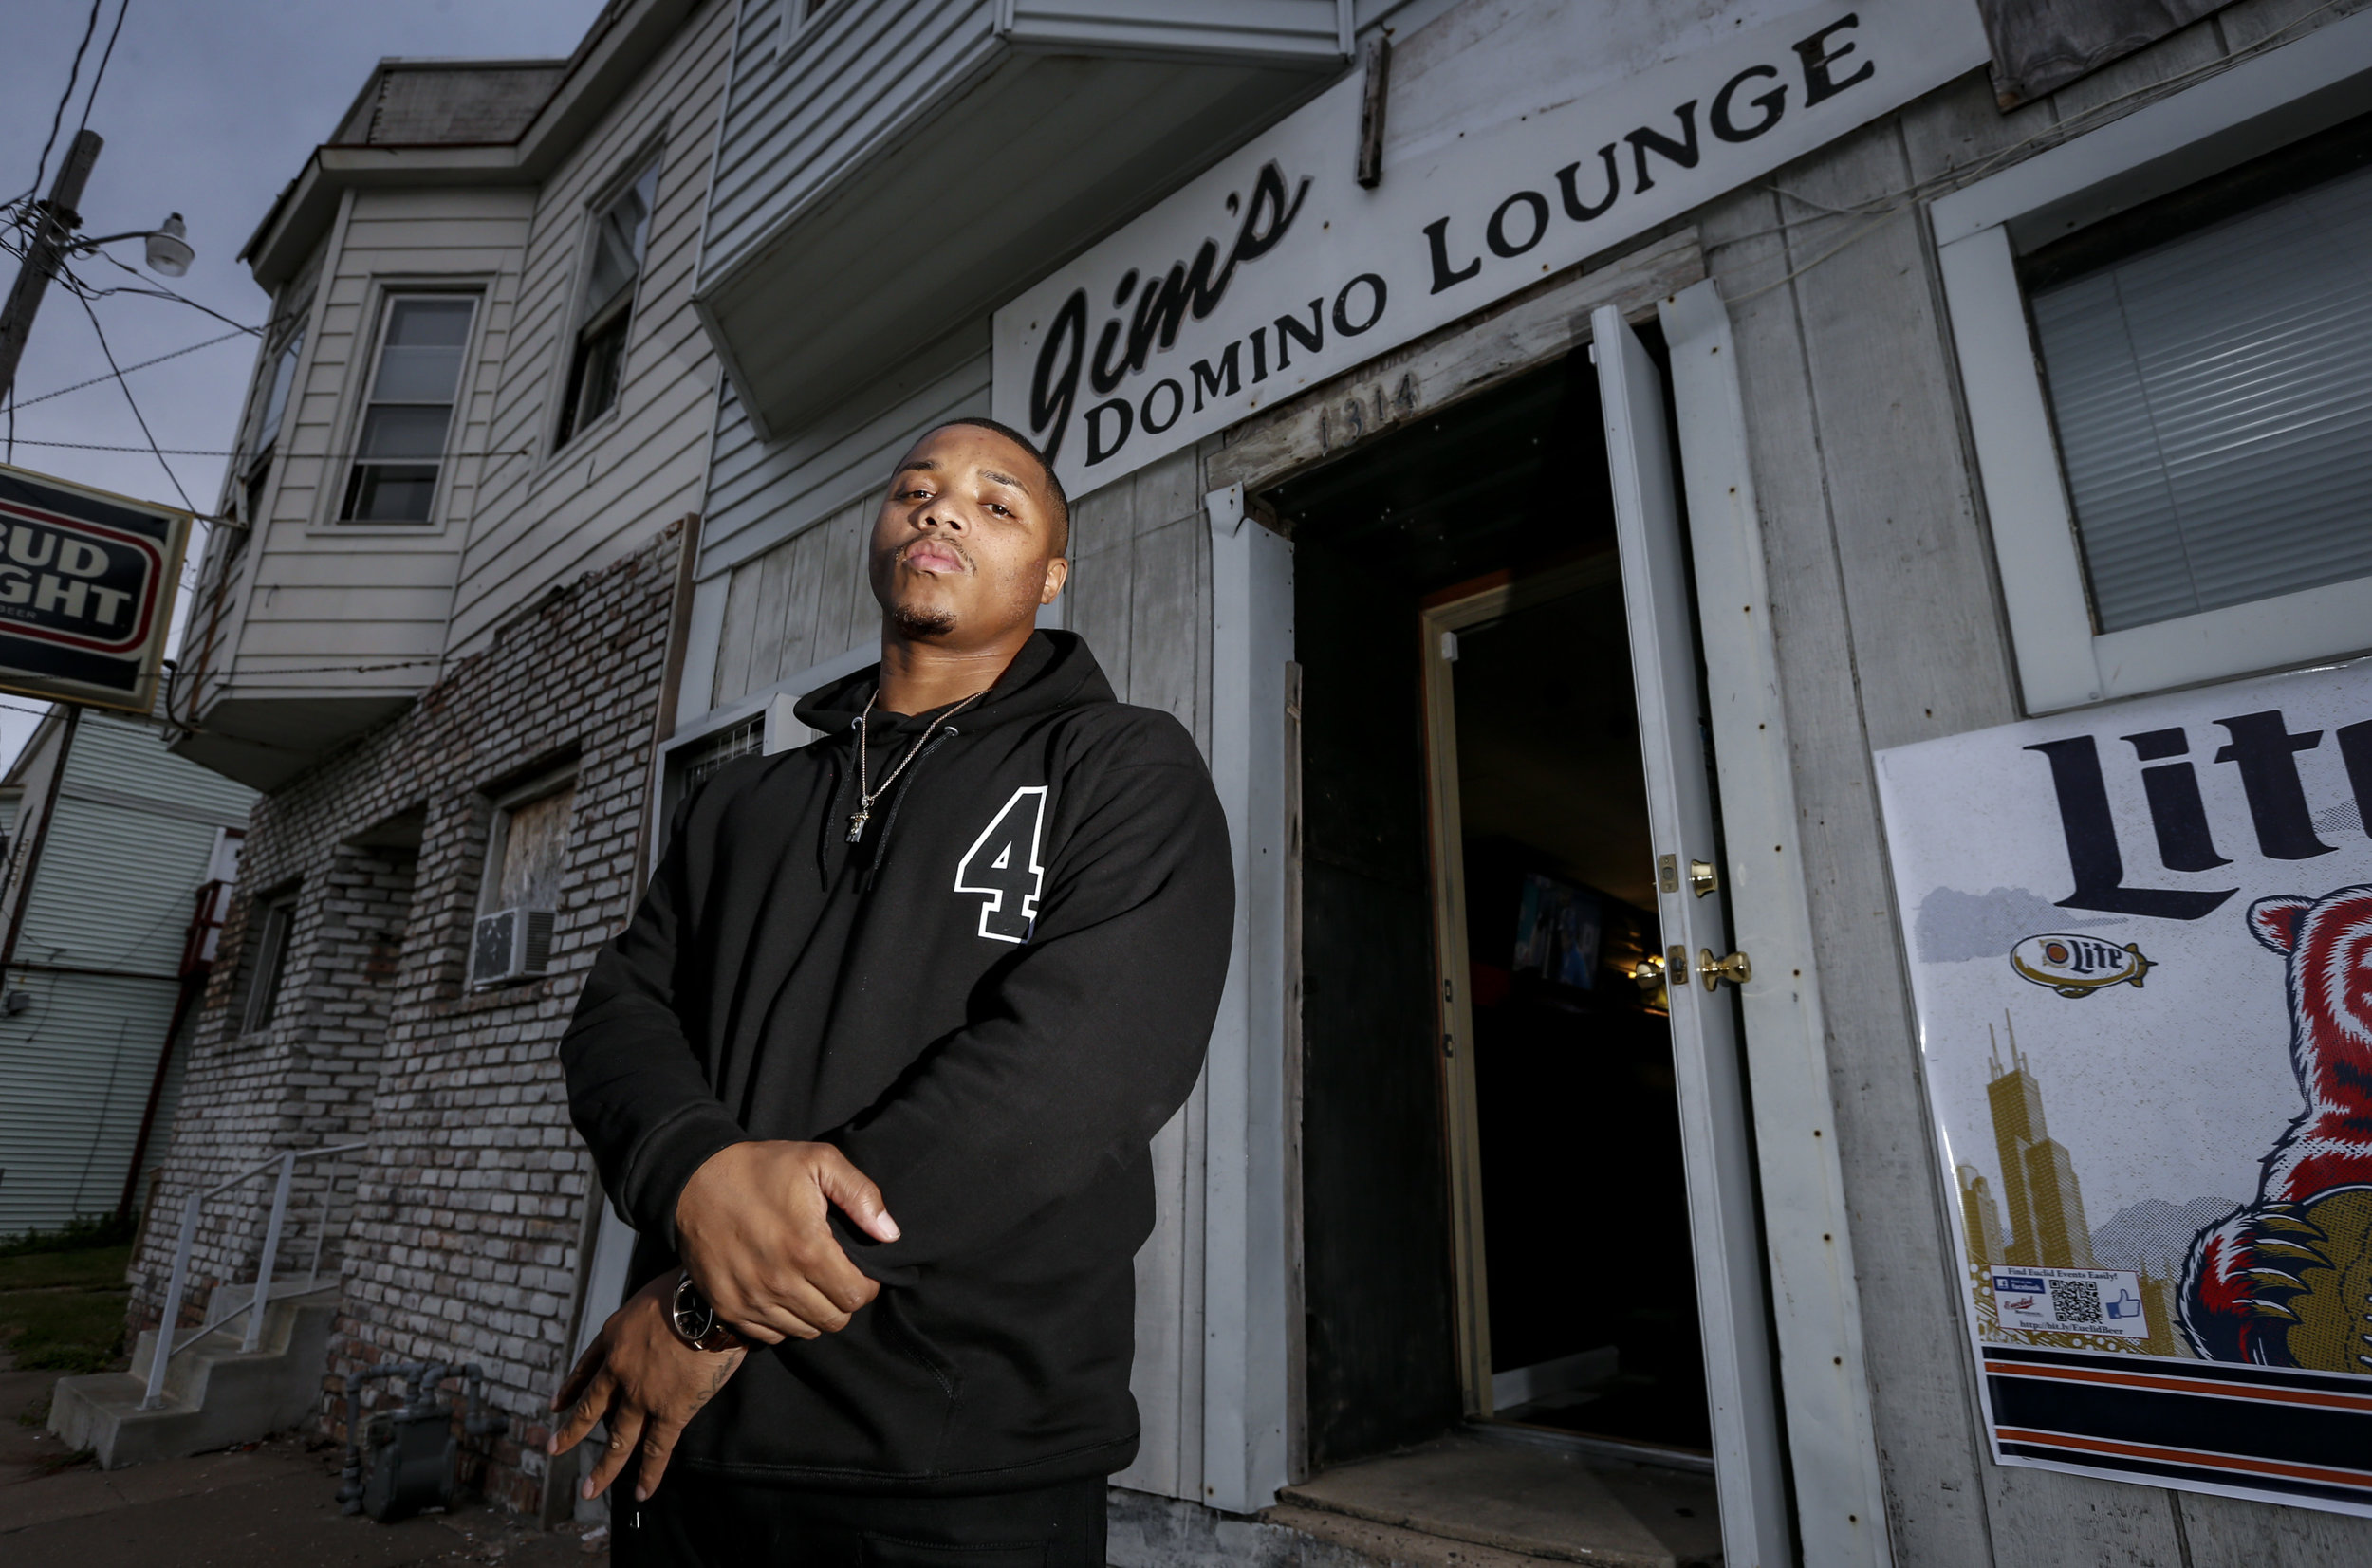 Torrian Ball poses for a photo in front of Jim's Domino Lounge on 13th Street in East Moline, Wednesday, October 19, 2016. The lounge was where Ball performed for the first time with a simple setup in the corner for a small crowd.